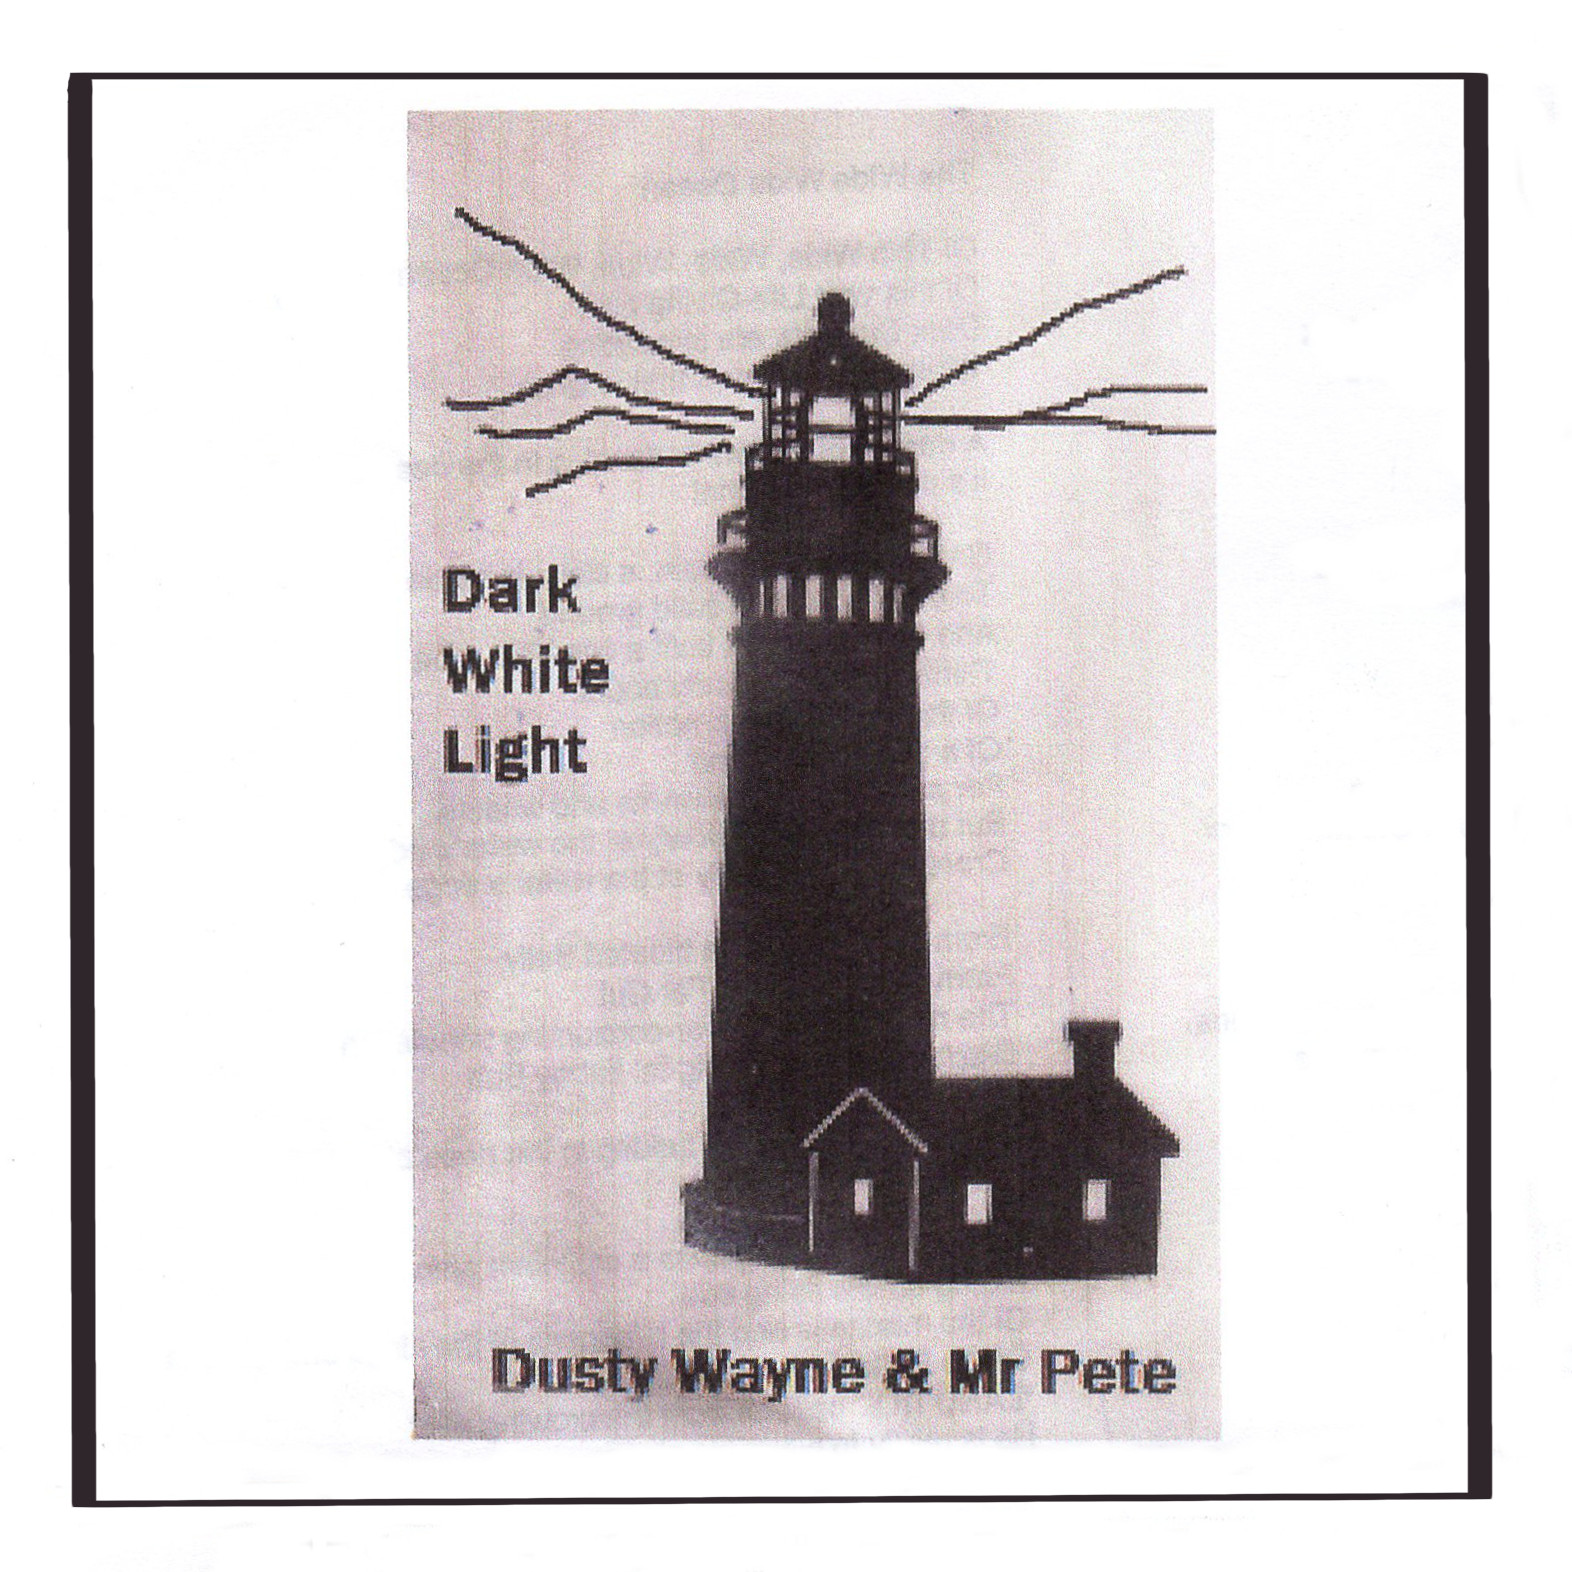 Dusty Wayne and Mr Pete:               Dark White Light (2018)